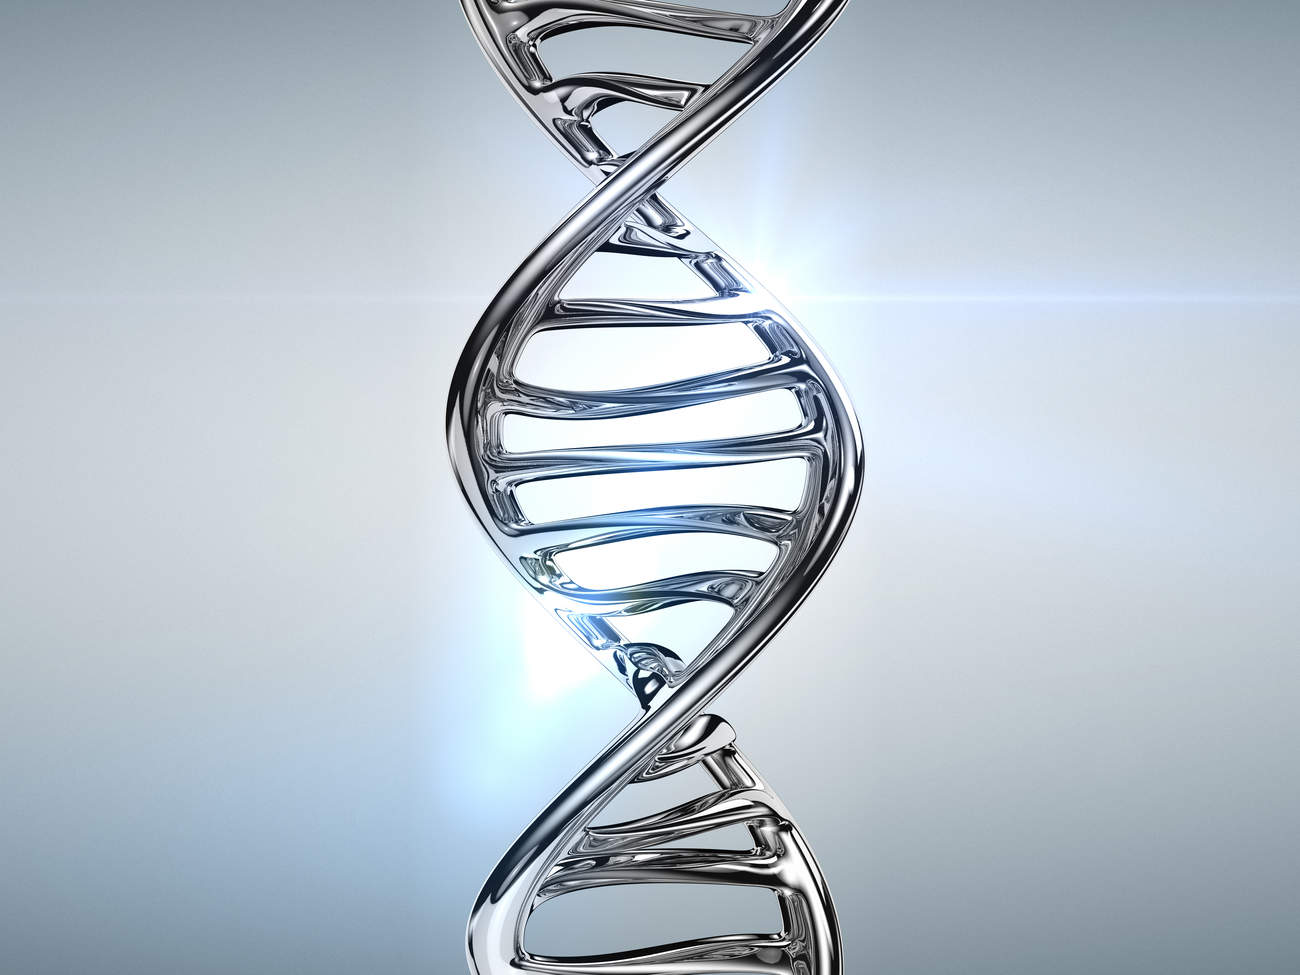 dna-strand-illustration-double-helix